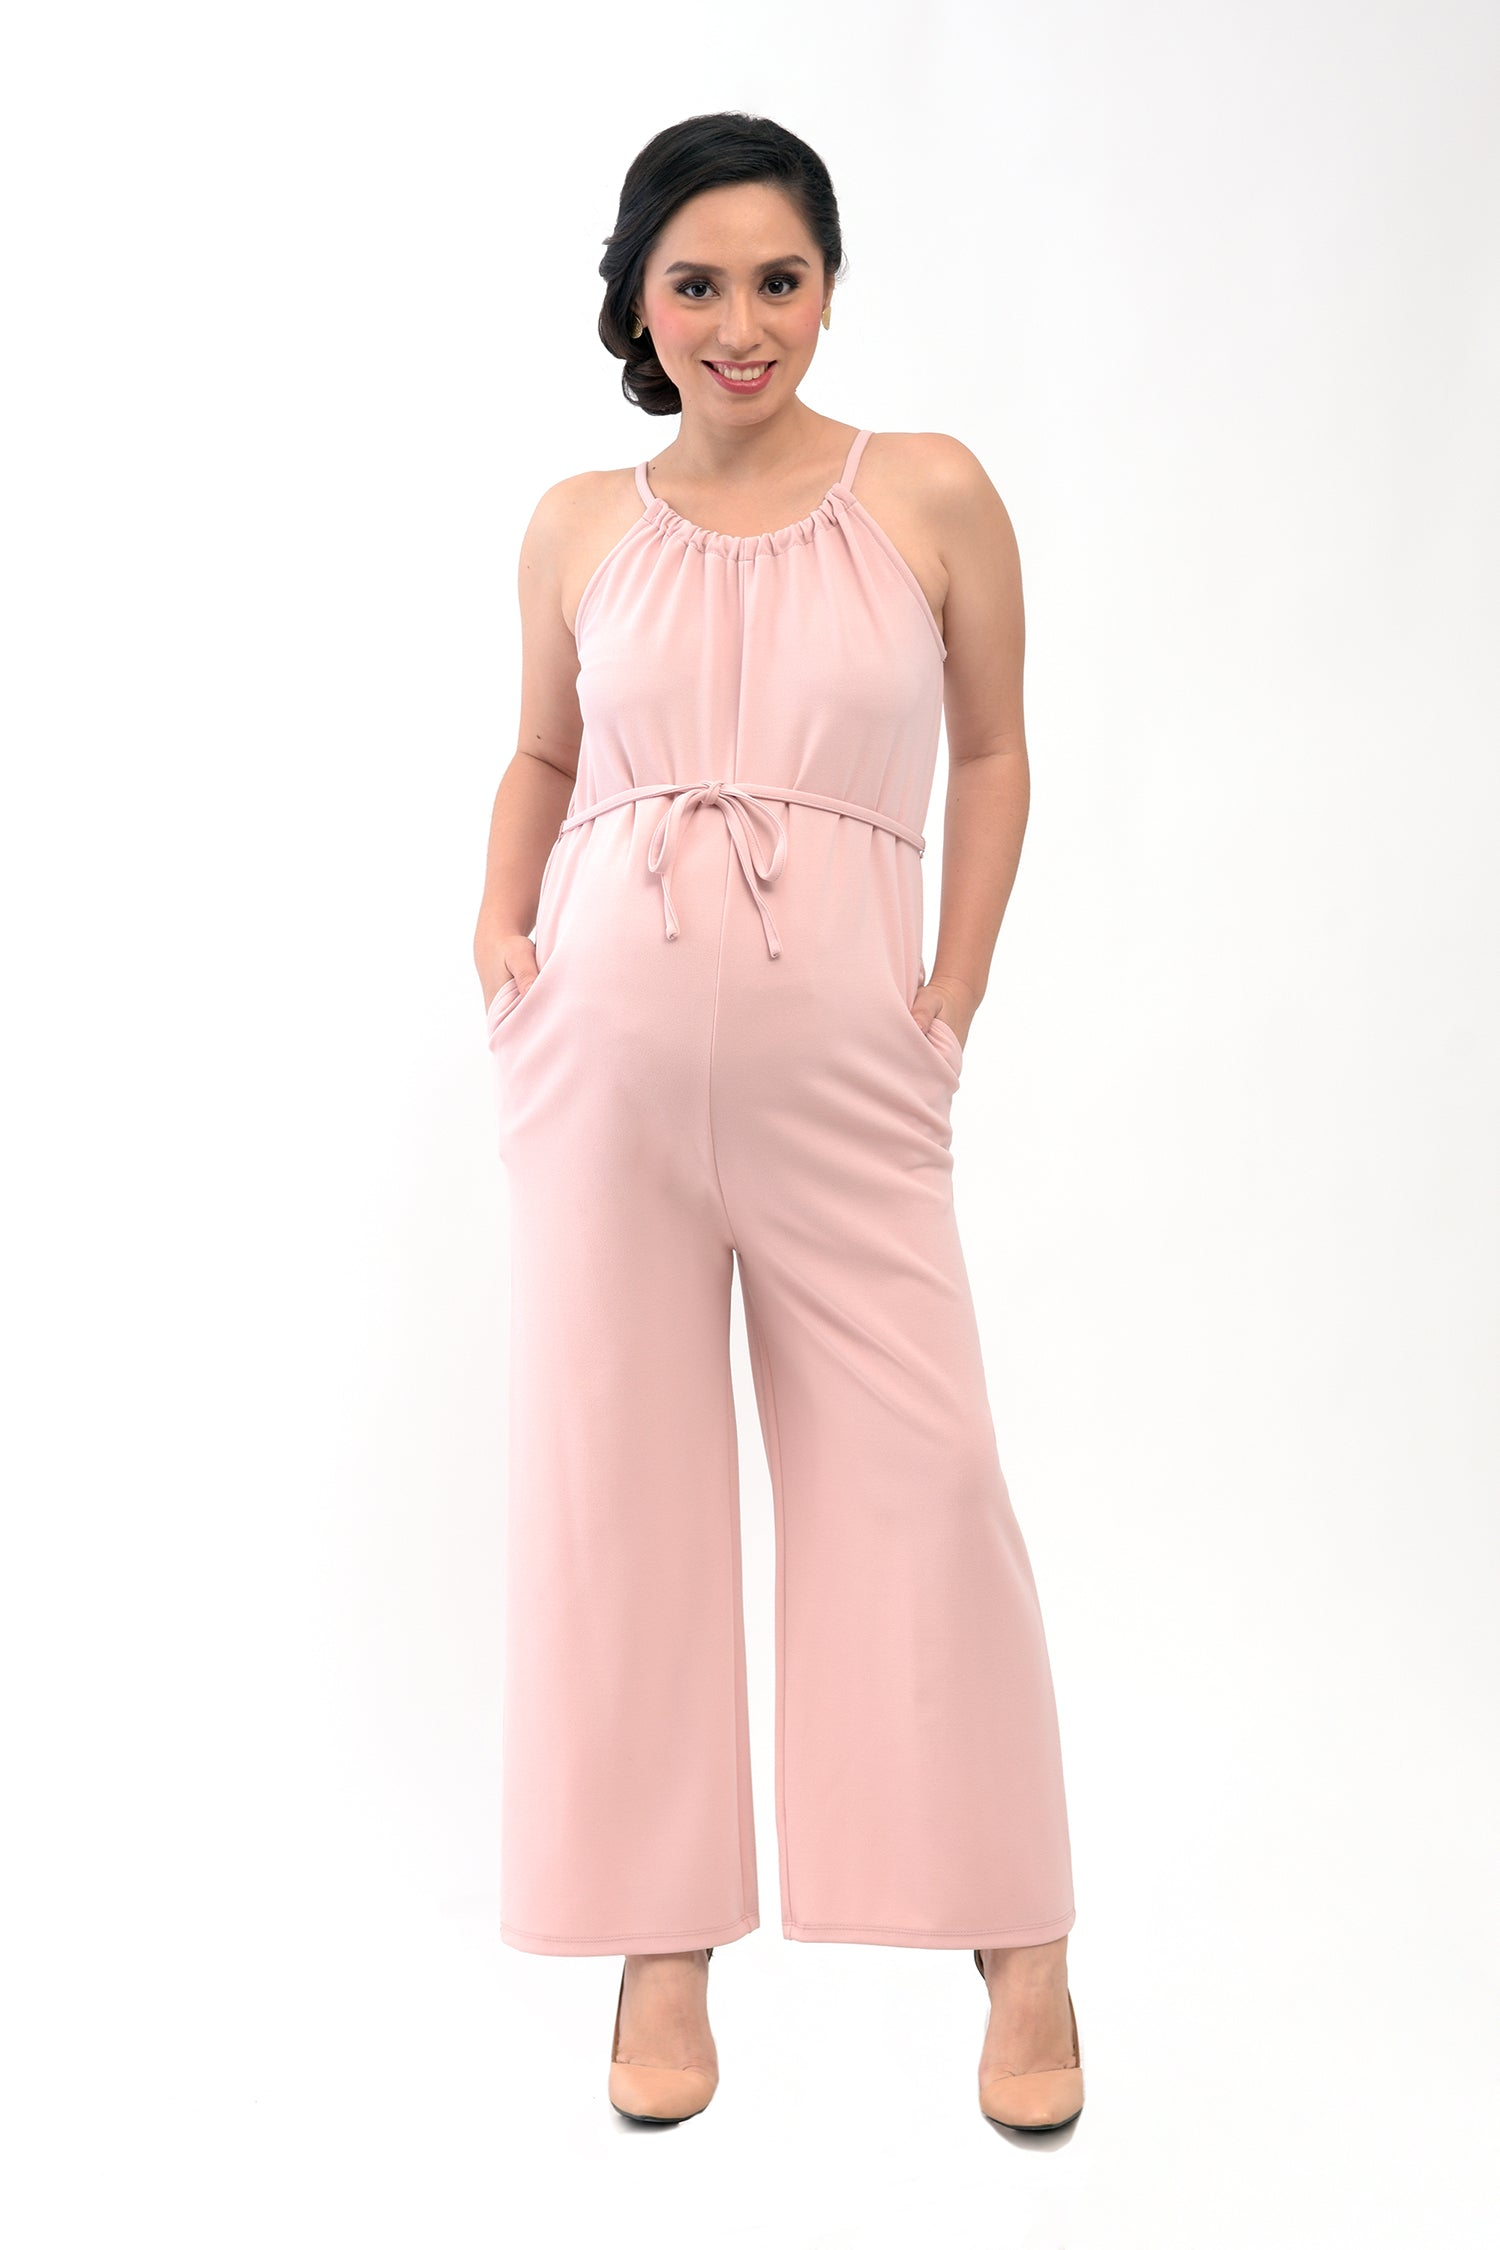 hoard as a rare commodity sneakers low price Halter Maternity Jumpsuit - Old Rose (RMP 006) -